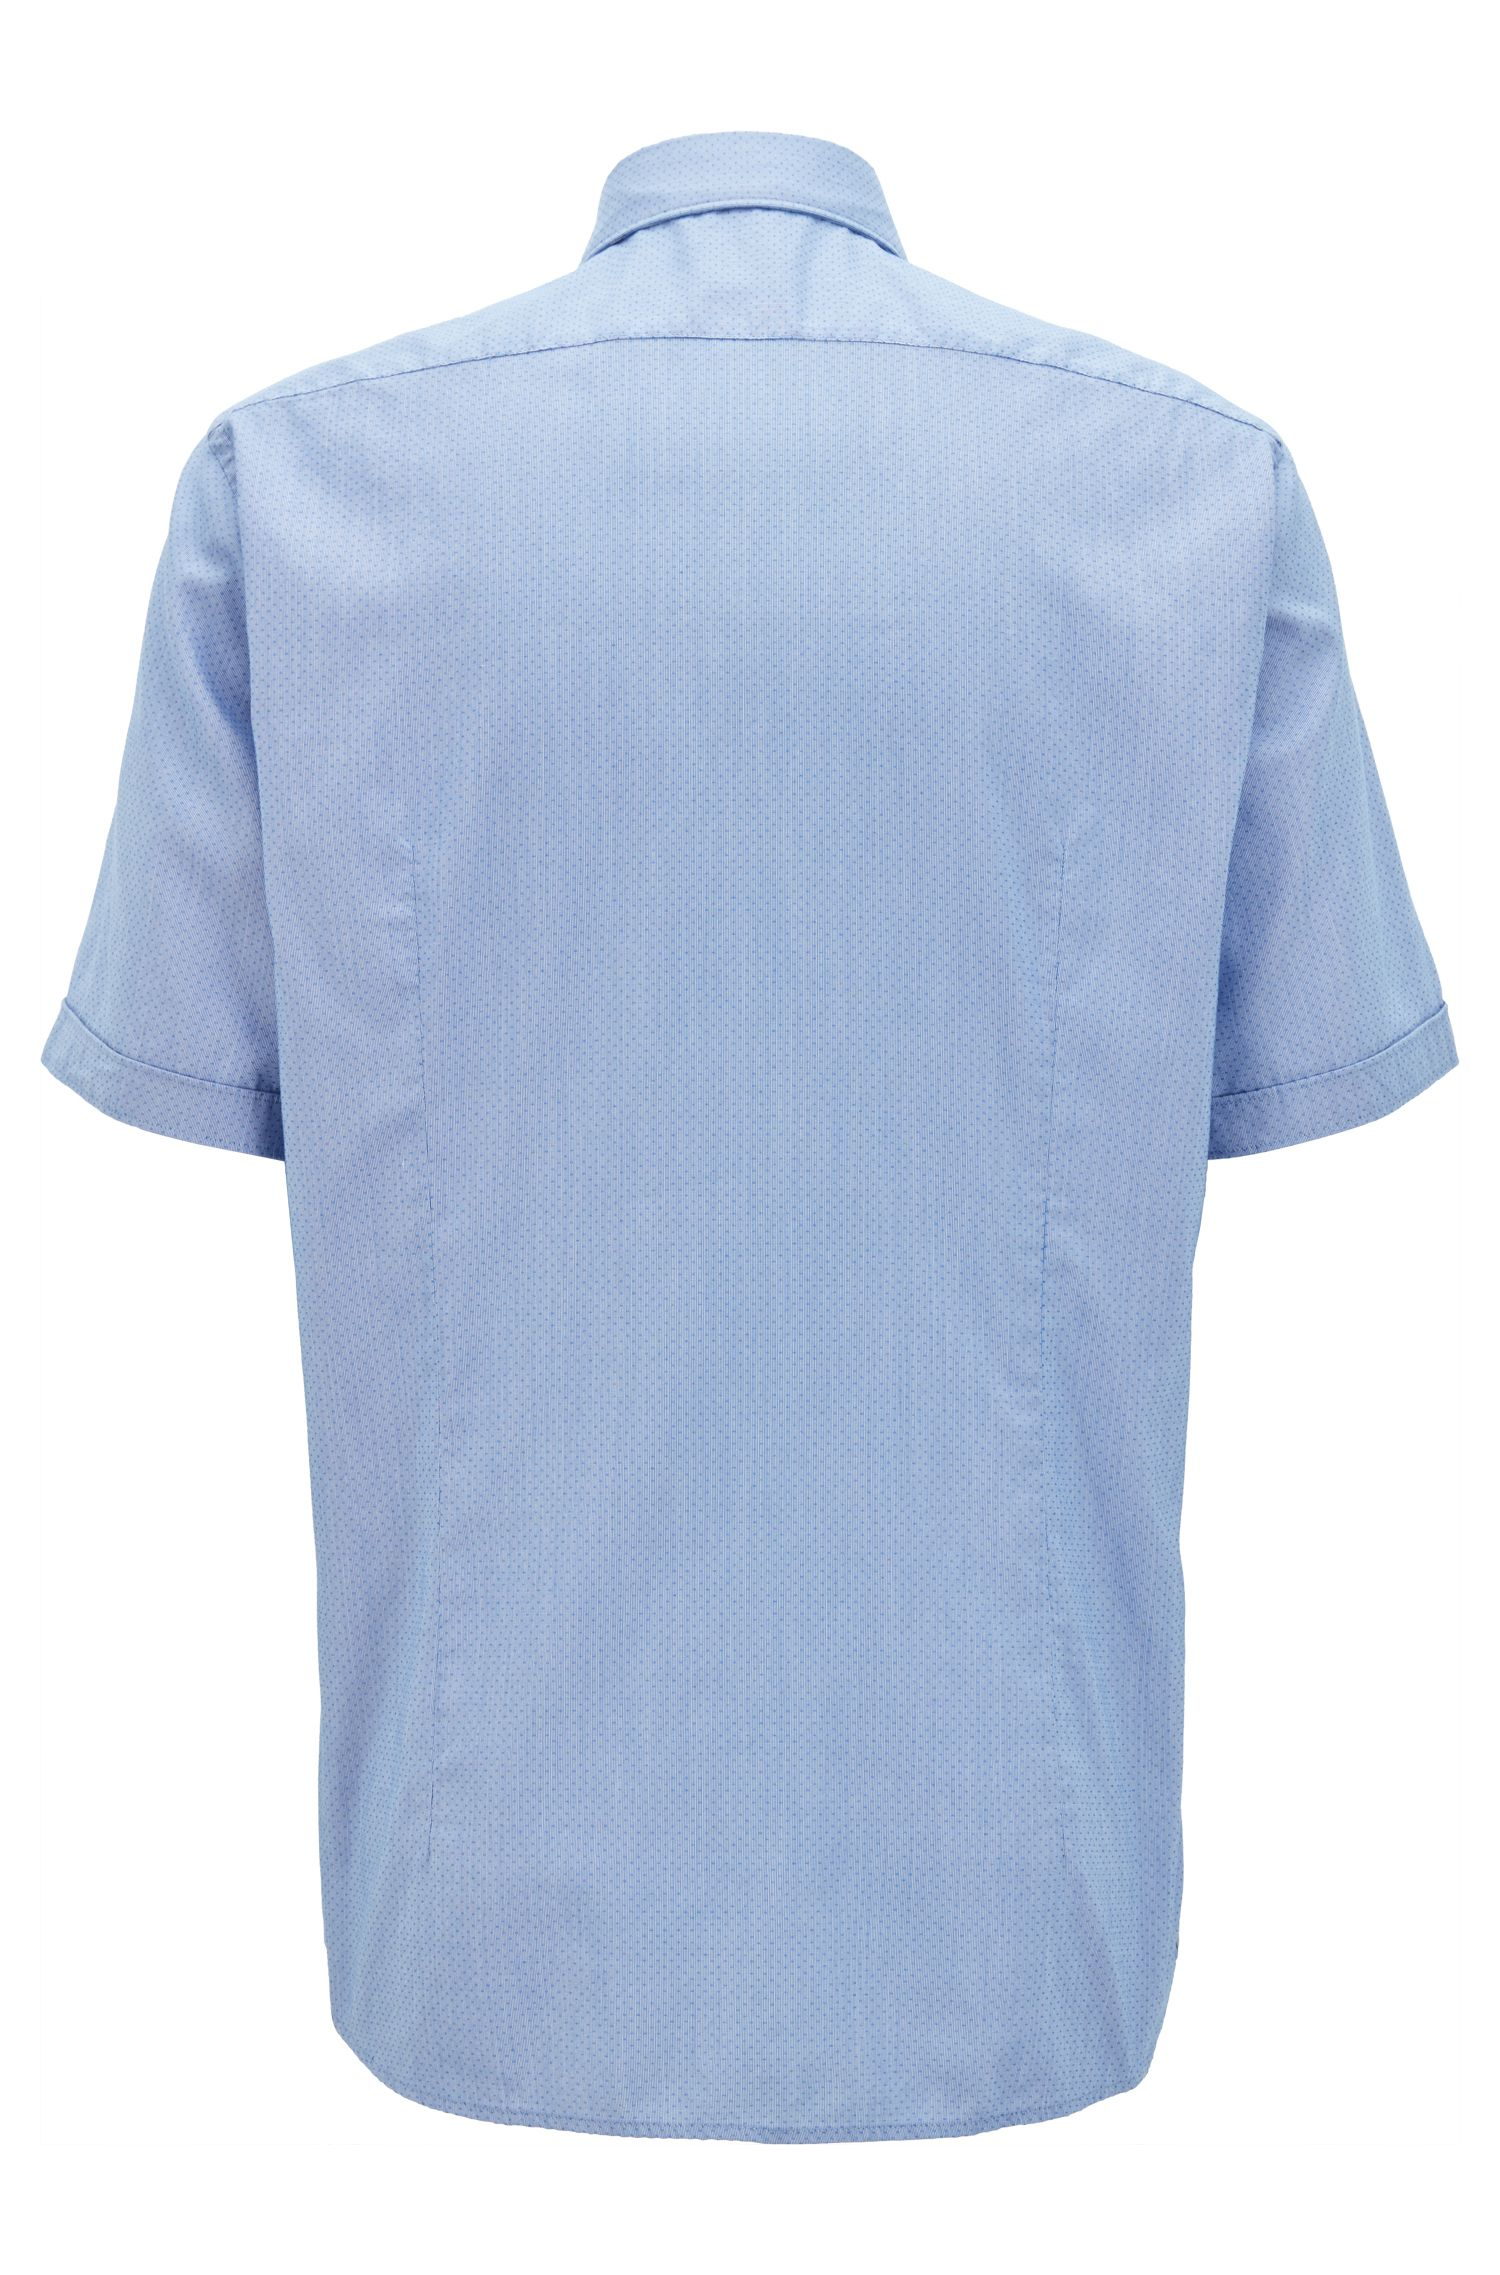 Cotton Lyocell Sport Shirt, Regular Fit | Luka, Blue